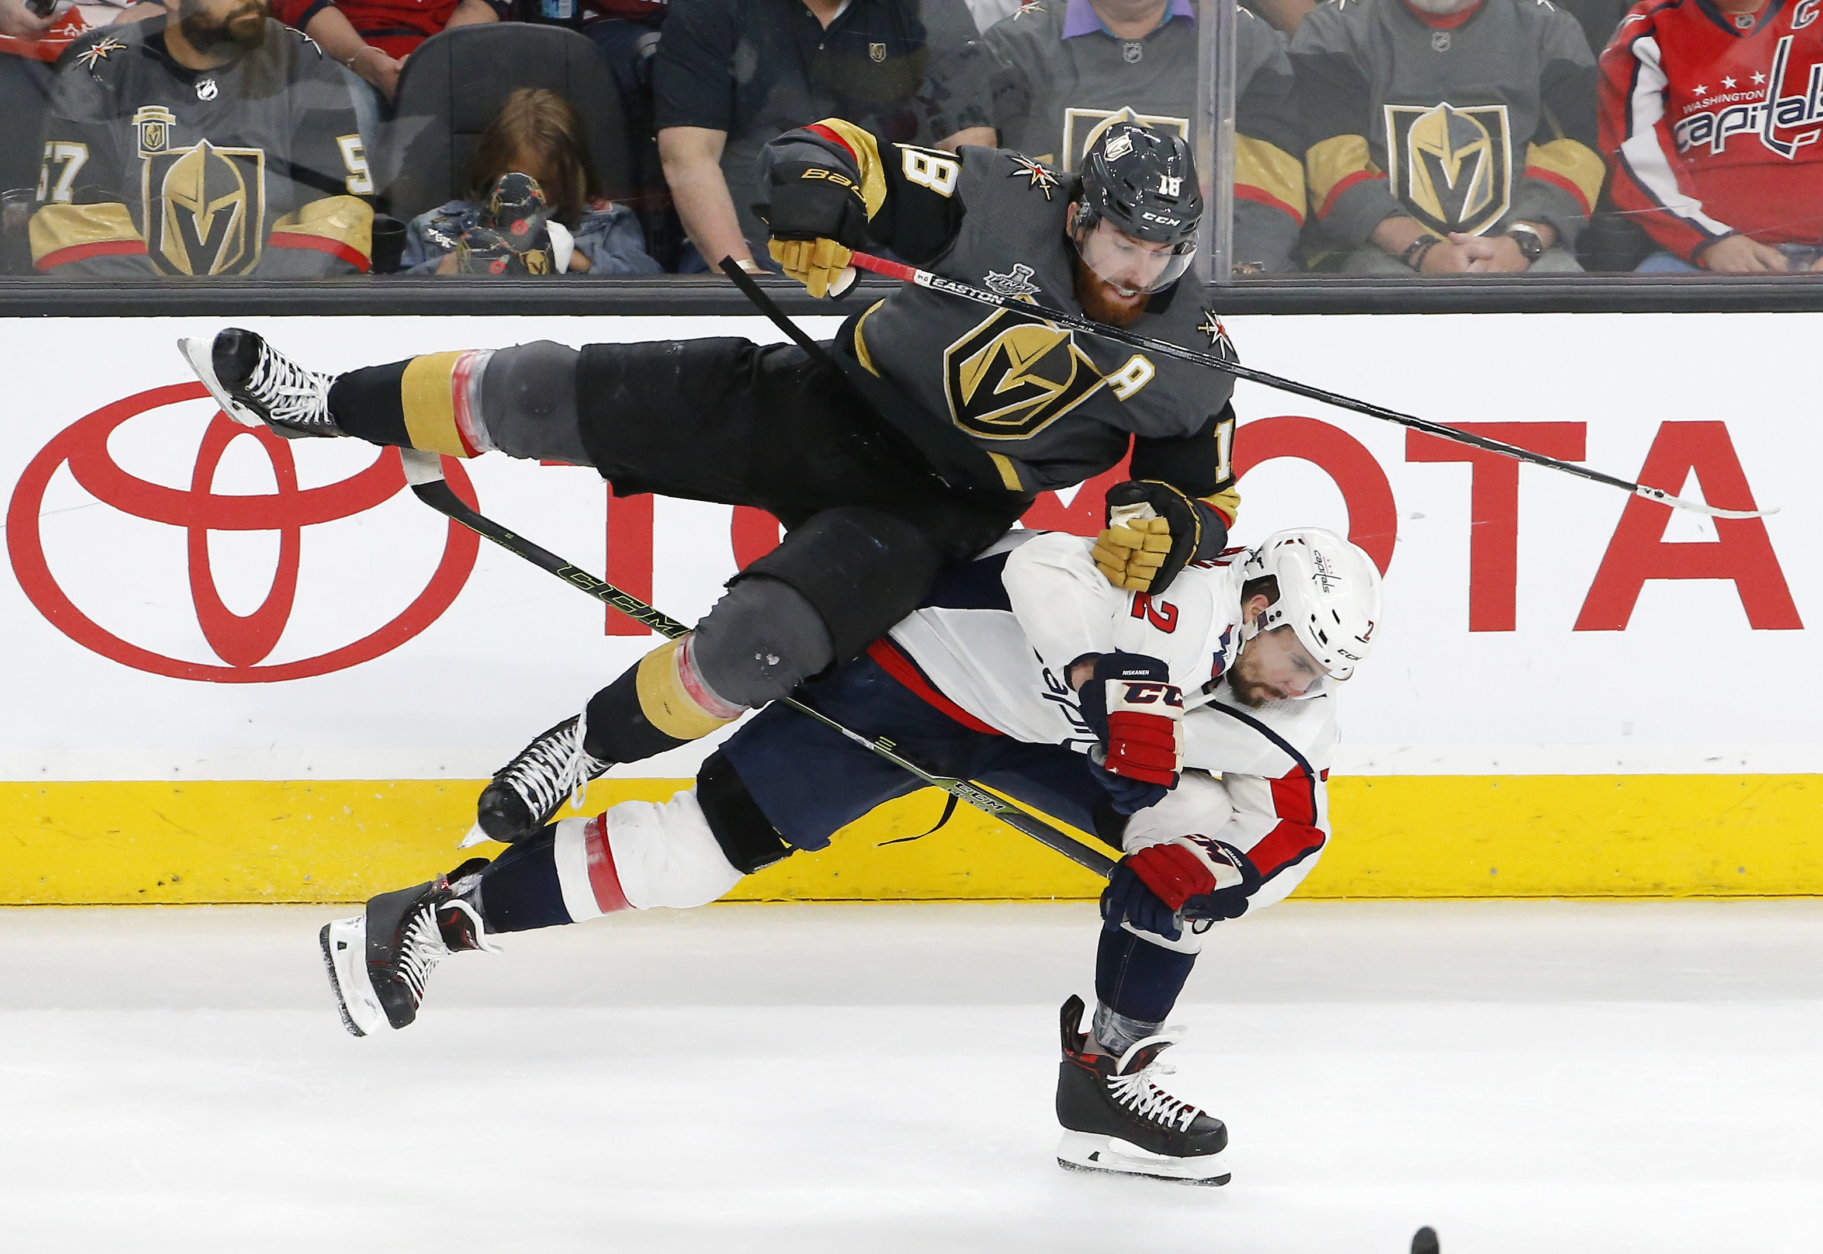 Vegas Golden Knights left wing James Neal, top, and Washington Capitals defenseman Matt Niskanen collide during the third period in Game 2 of the NHL hockey Stanley Cup Finals Wednesday, May 30, 2018, in Las Vegas. (AP Photo/Ross D. Franklin)